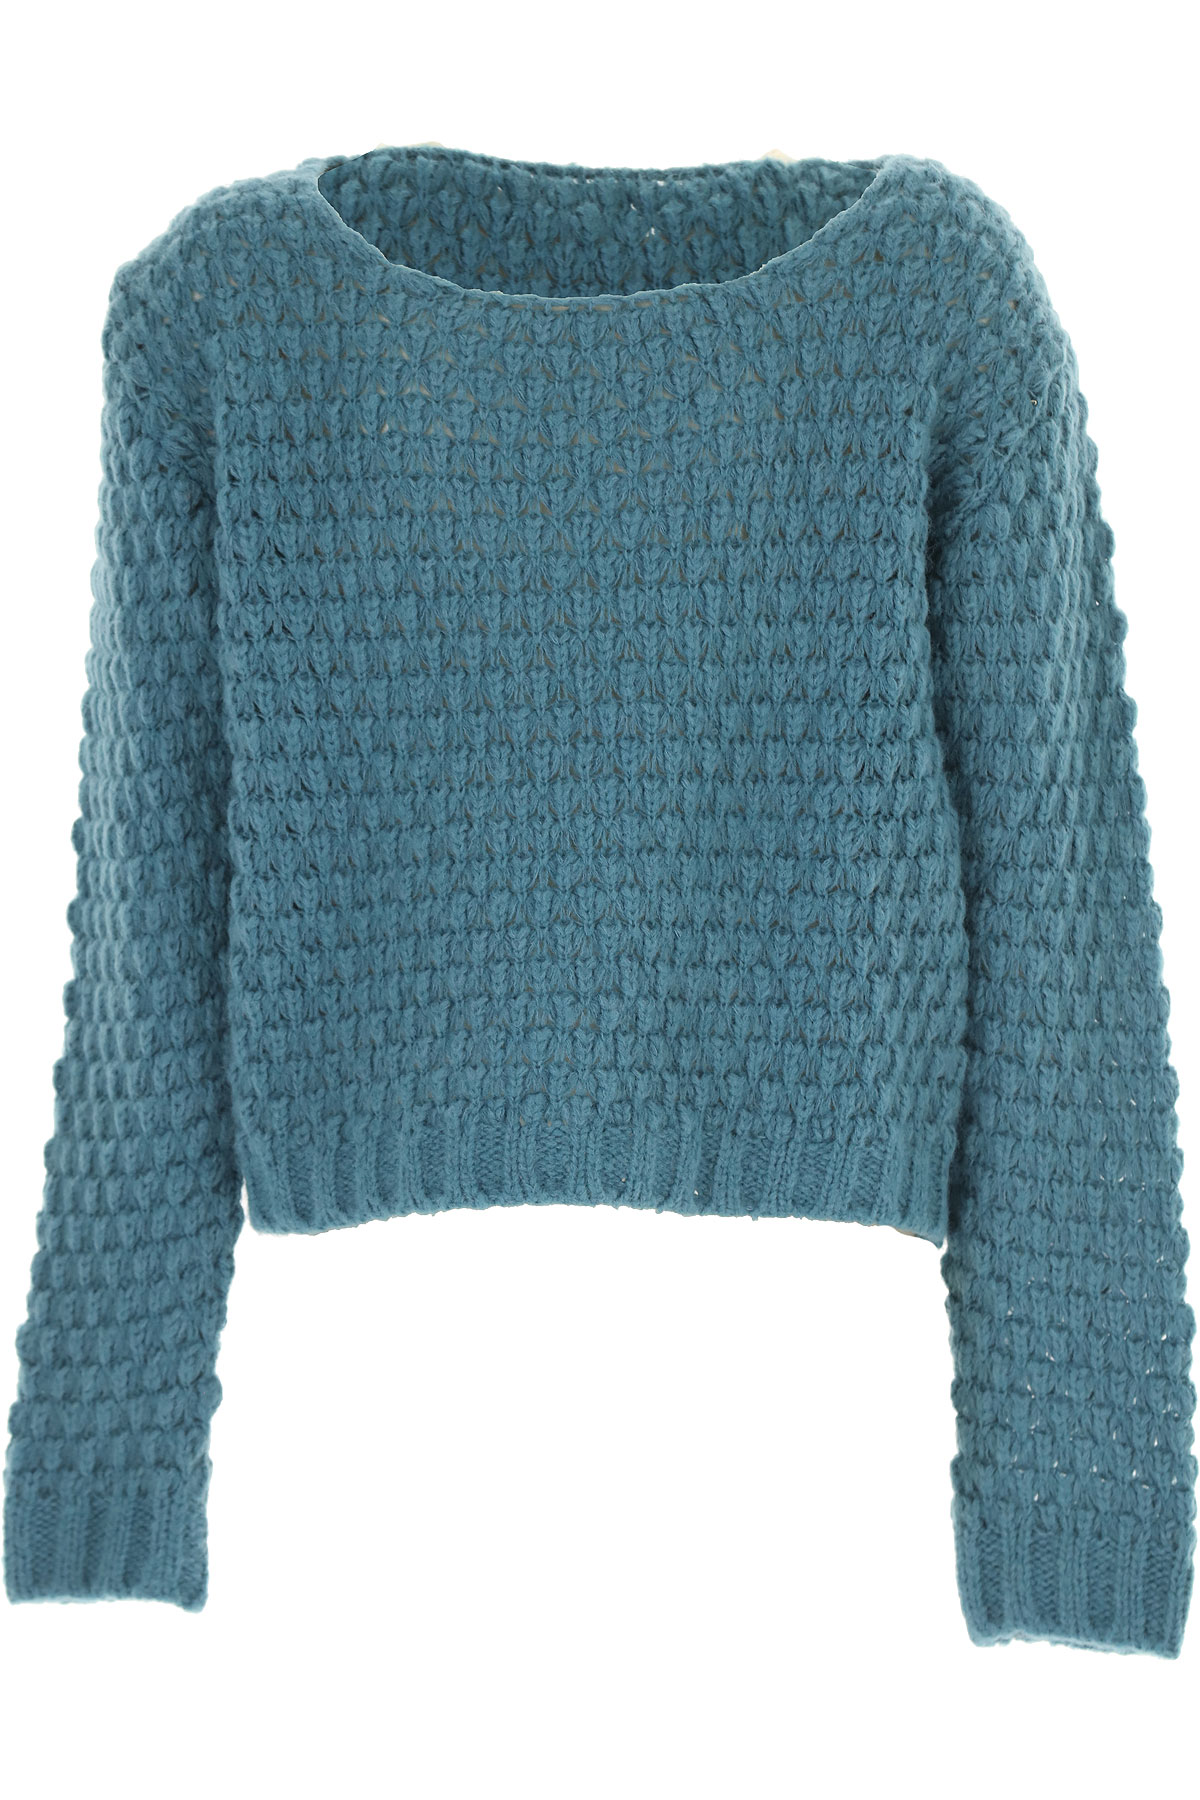 Dixie Kids Sweaters for Girls On Sale, Teal, polyamide, 2019, XL XXL